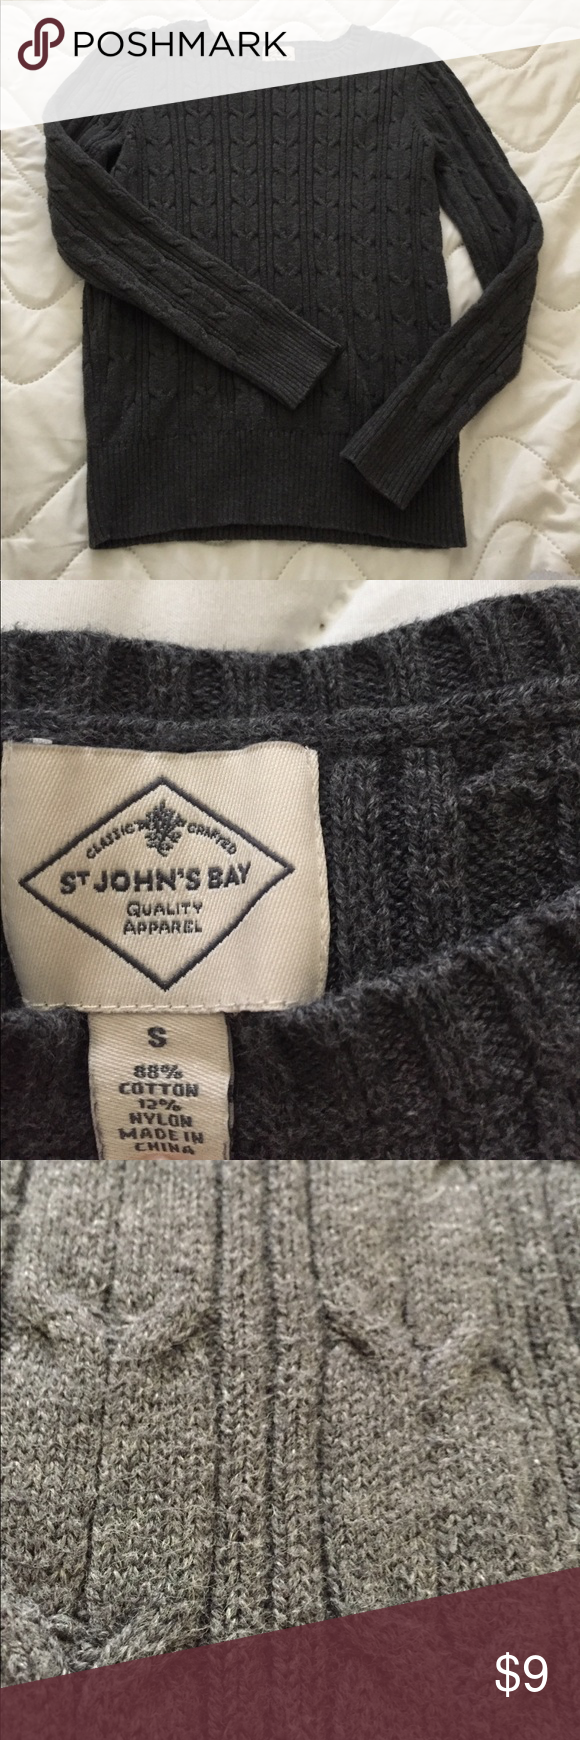 Grey cable knit sweater Very soft St. John's Bay sweater Sweaters Crew & Scoop Necks